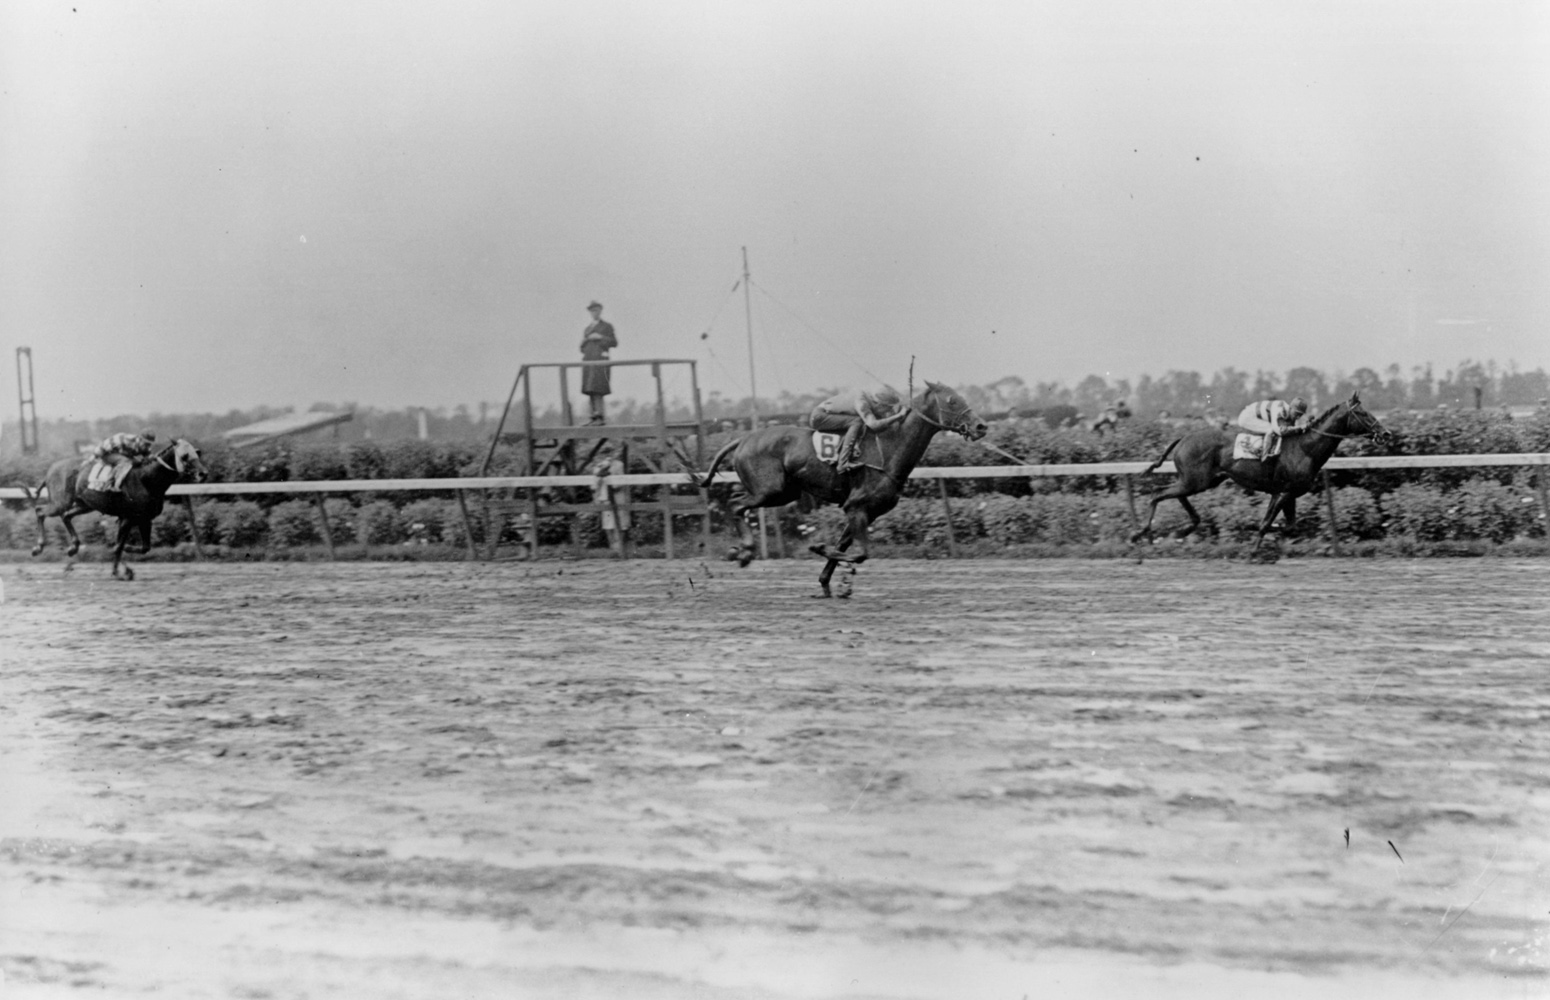 Mack Garner and Blue Larkspur winning the 1929 Belmont Stakes (Keeneland Library Cook Collection/Museum Collection)